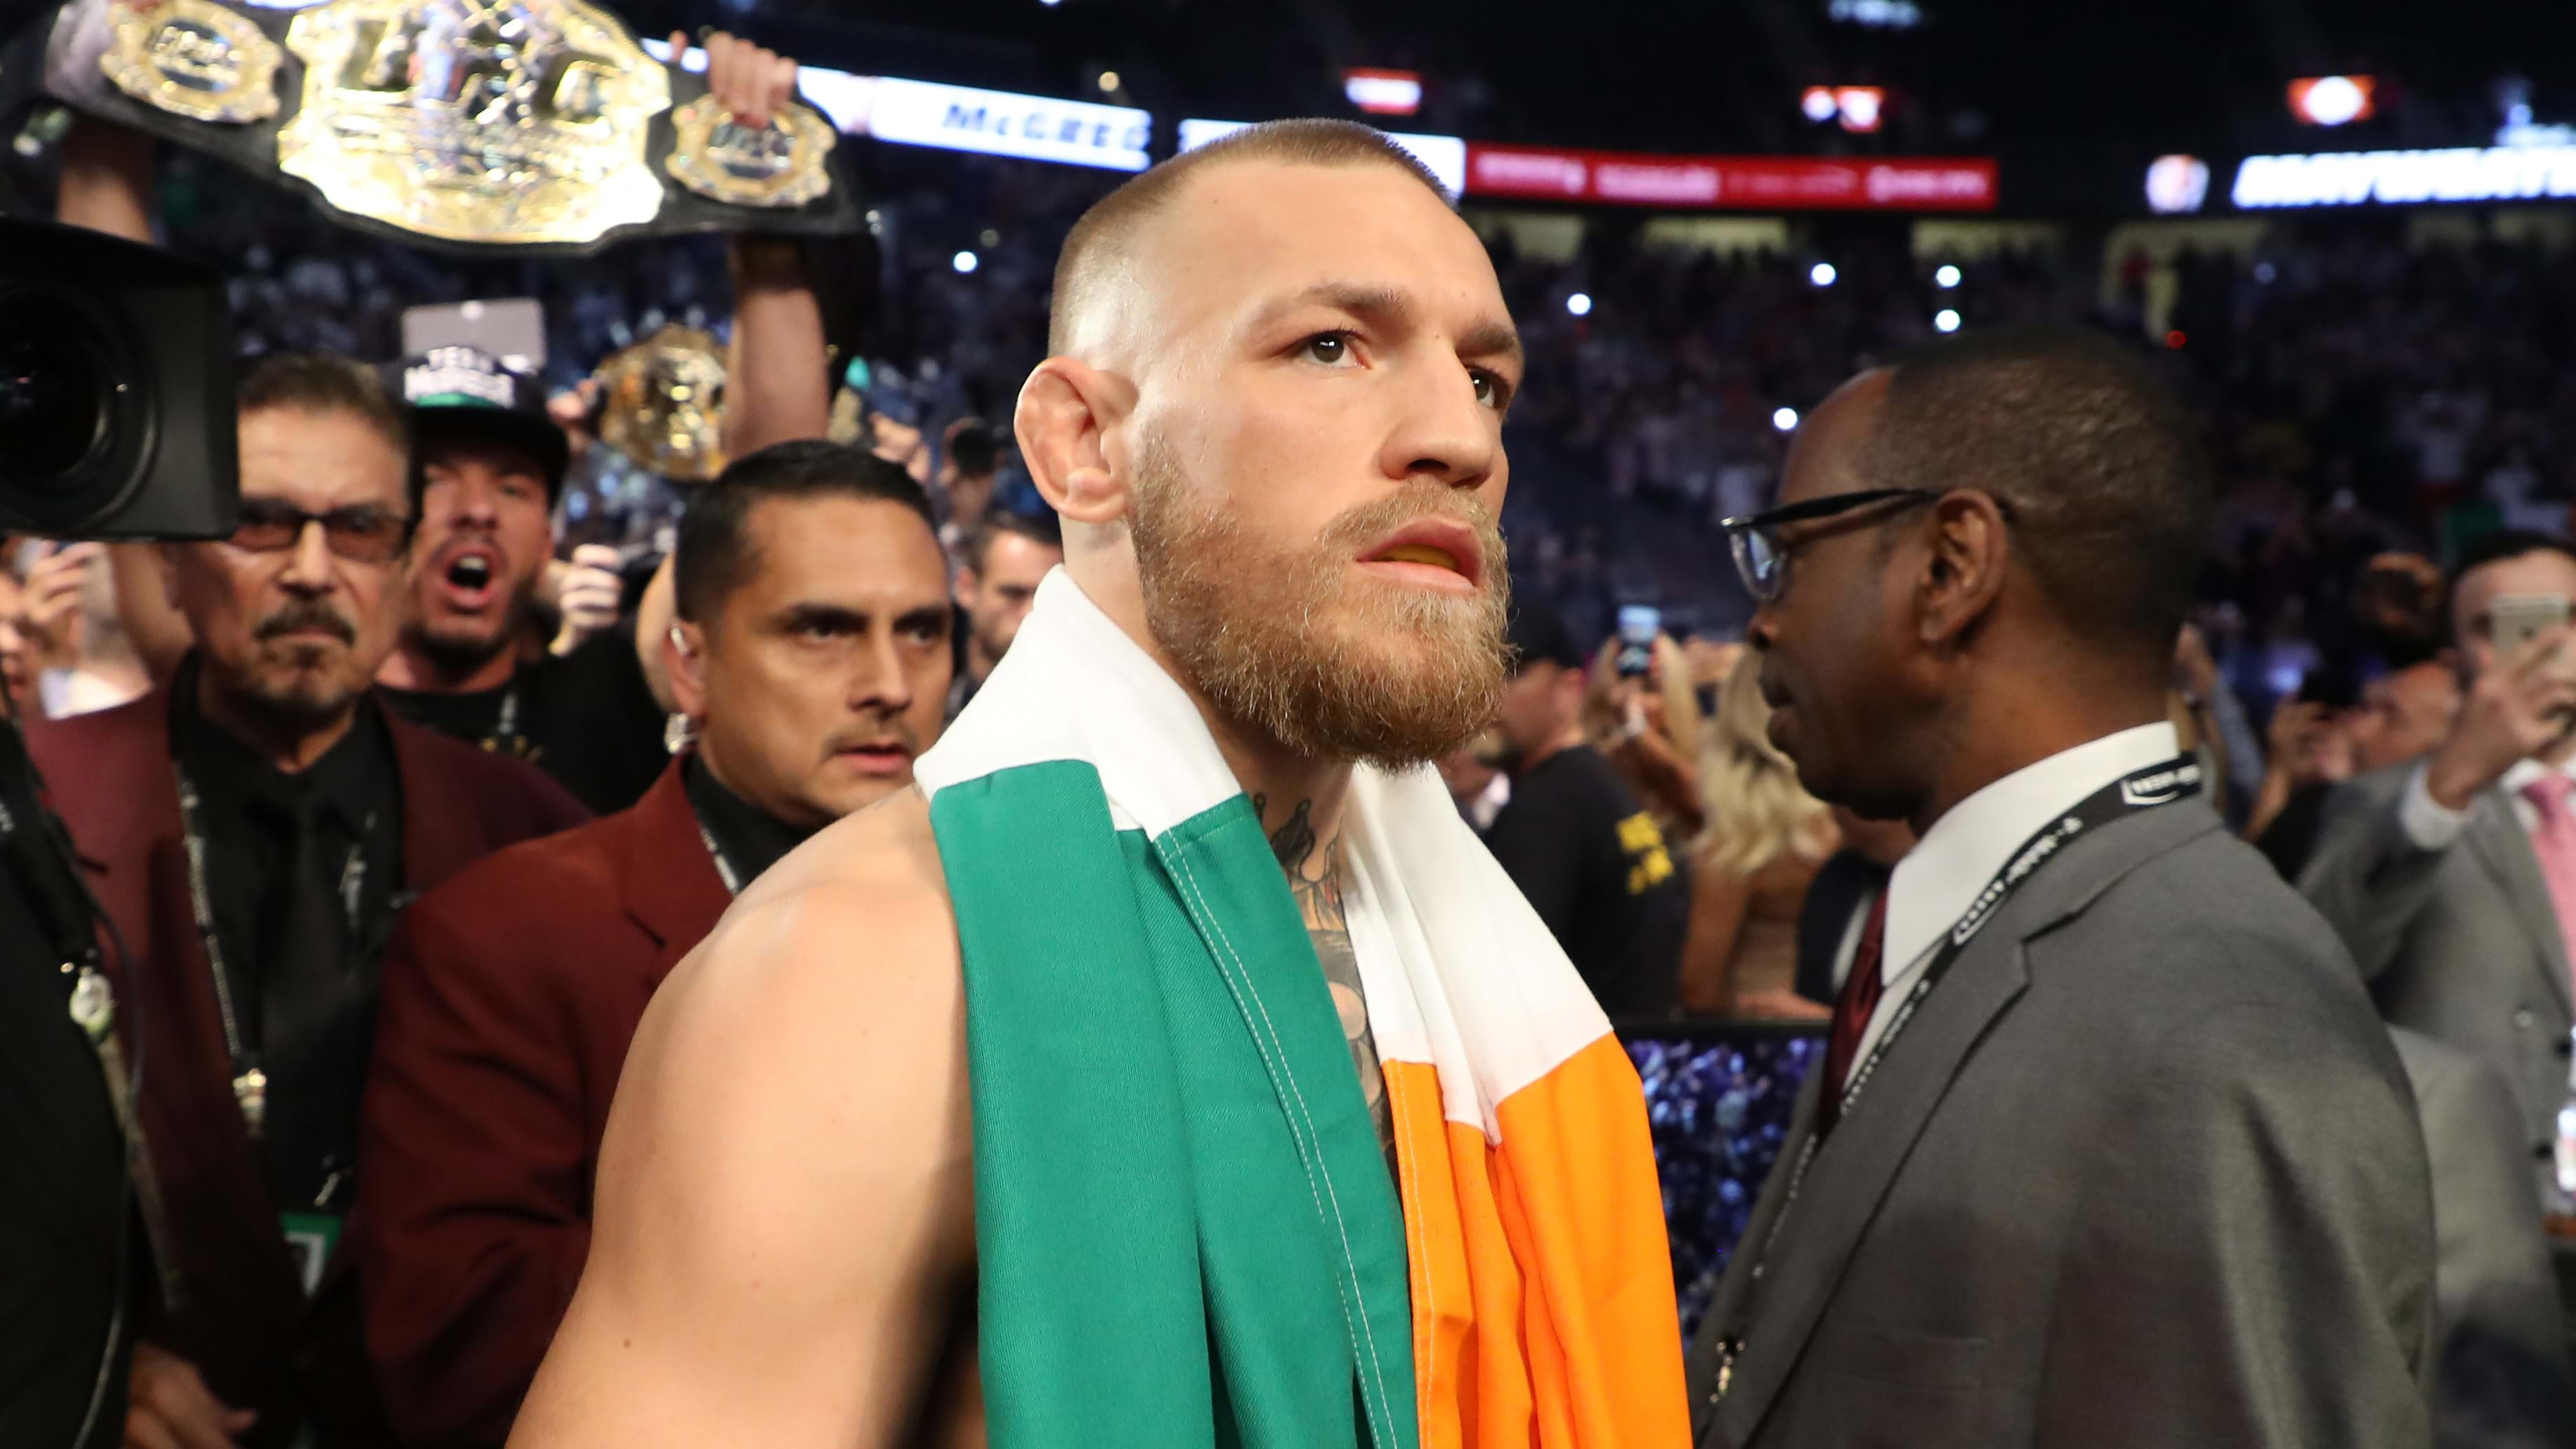 A handcuffed Conor McGregor expresses no remorse for UFC rampage